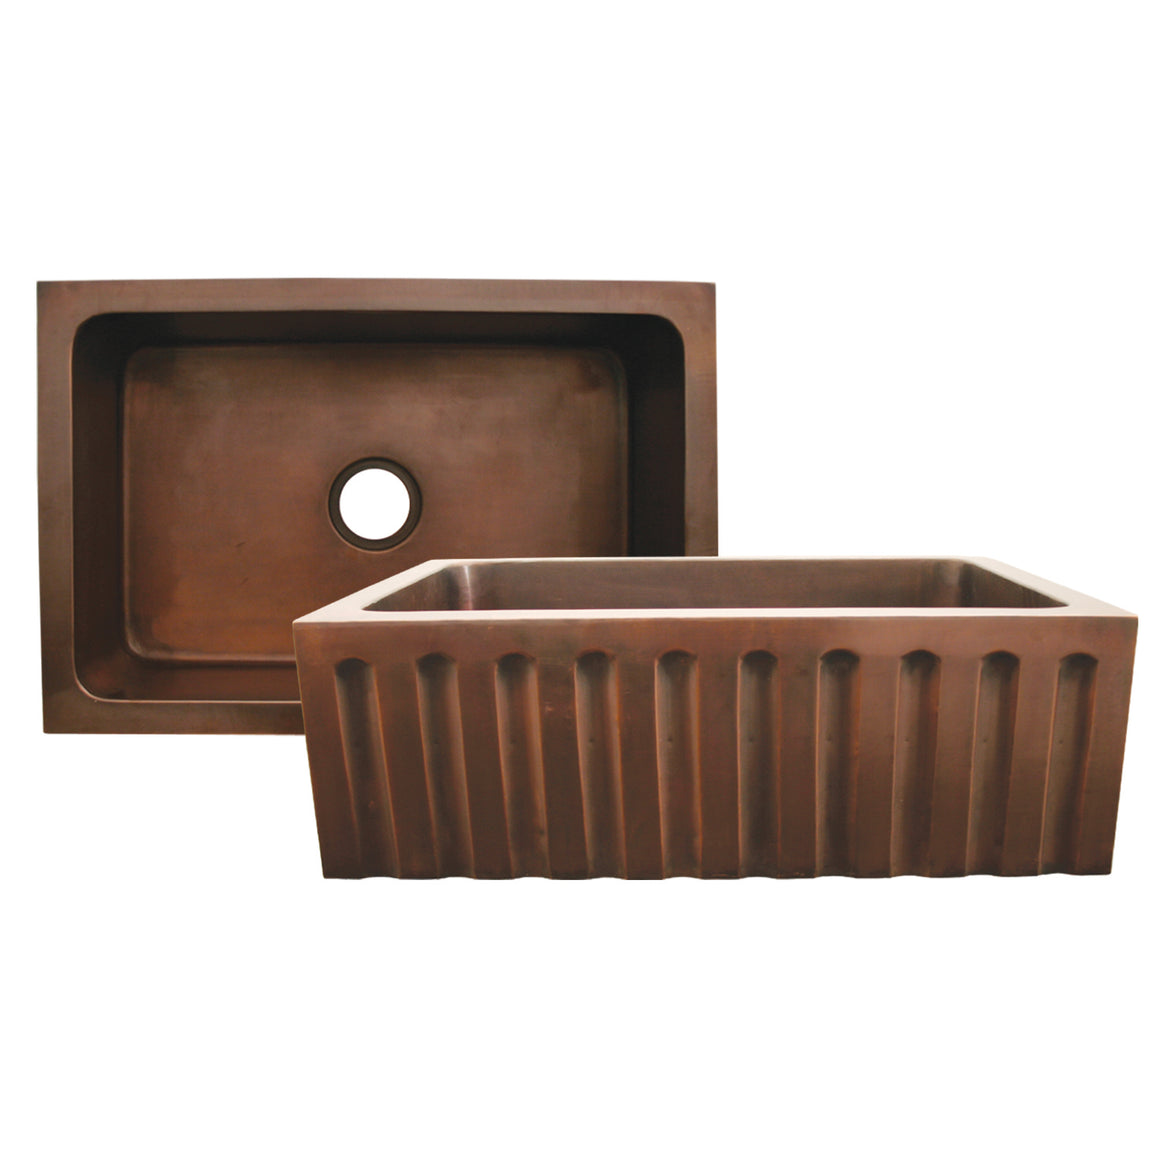 Copperhaus rectangular undermount sink with a fluted design front apron